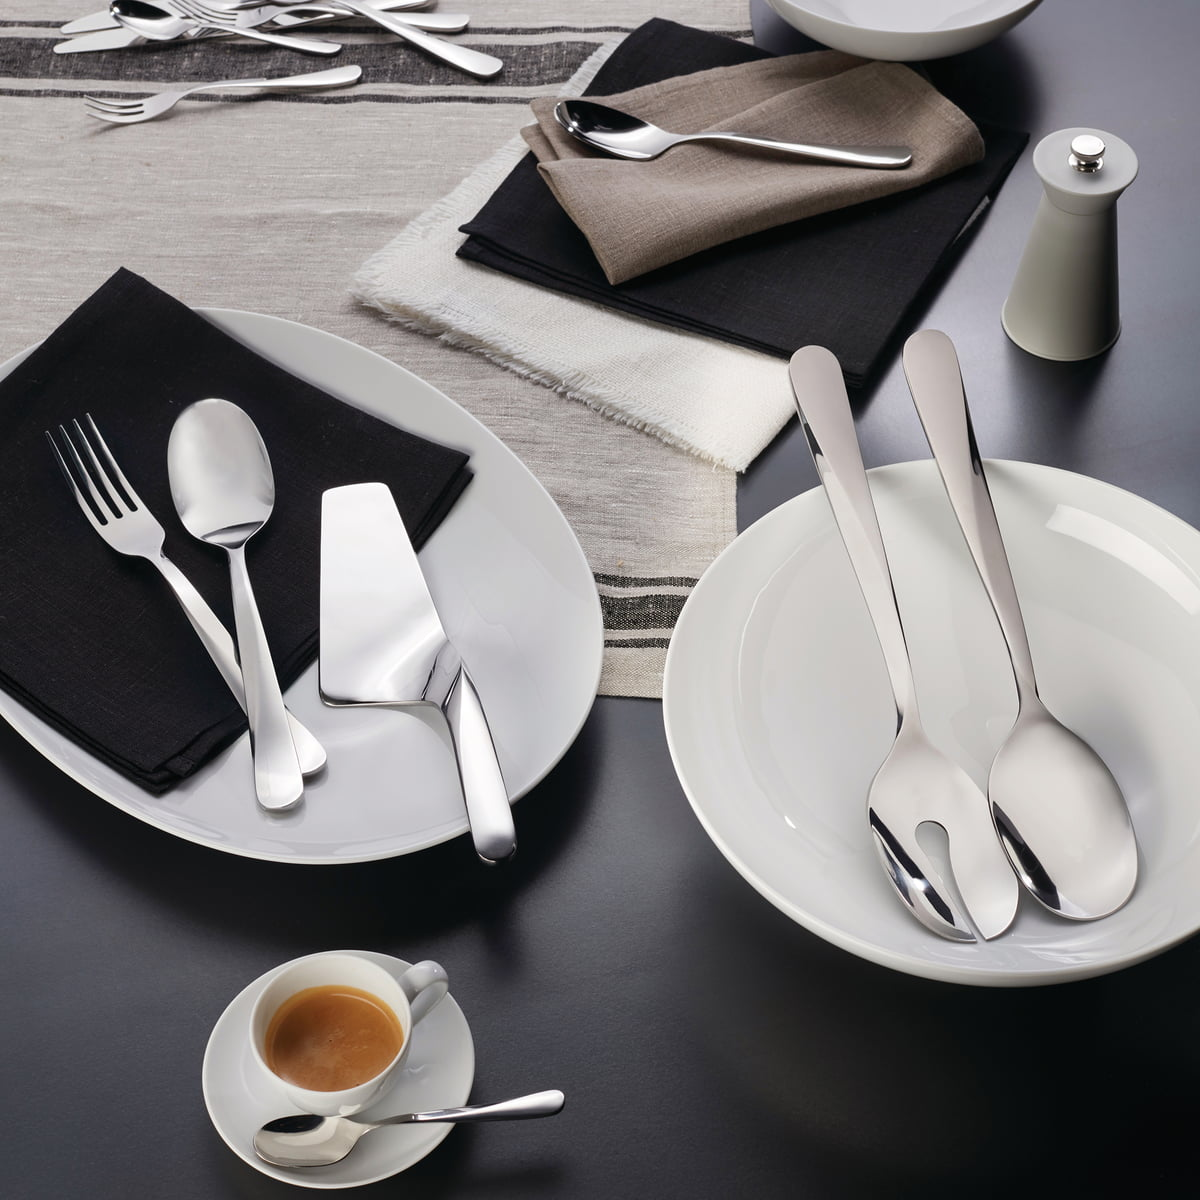 Giro cutlery set by alessi connox shop for Alessi shop